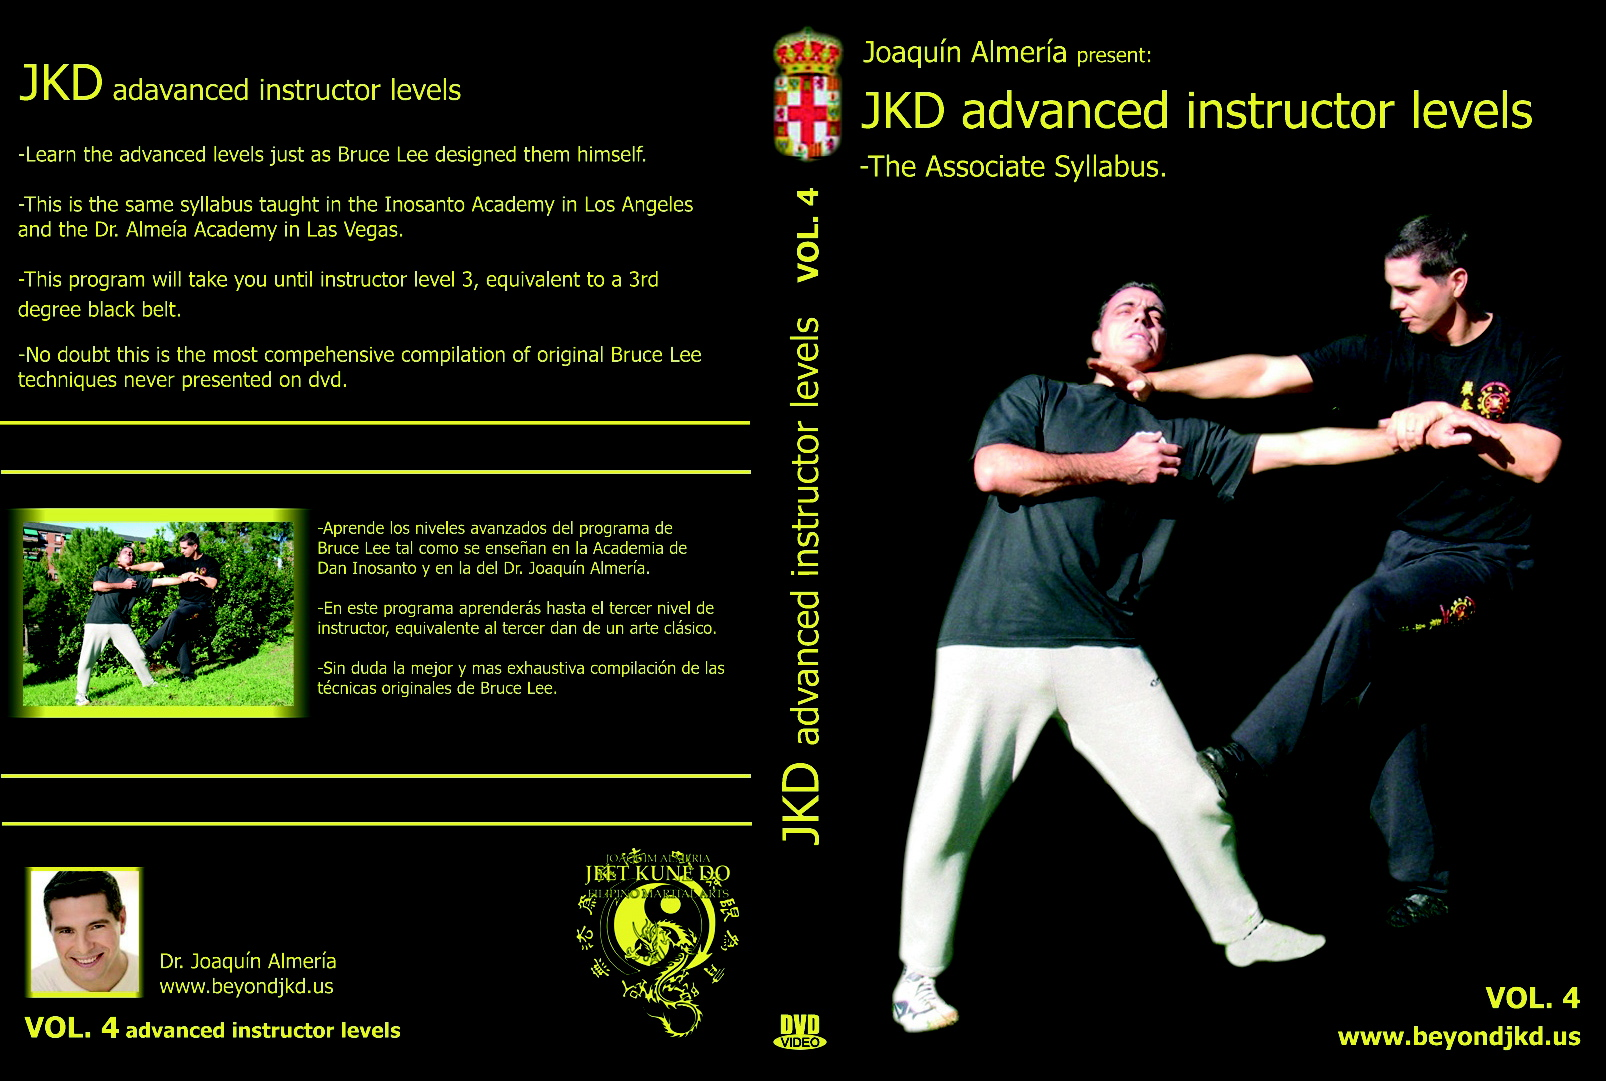 Chinatown JKD - Level 1 - Chinatown Jeet Kune Do Lessons